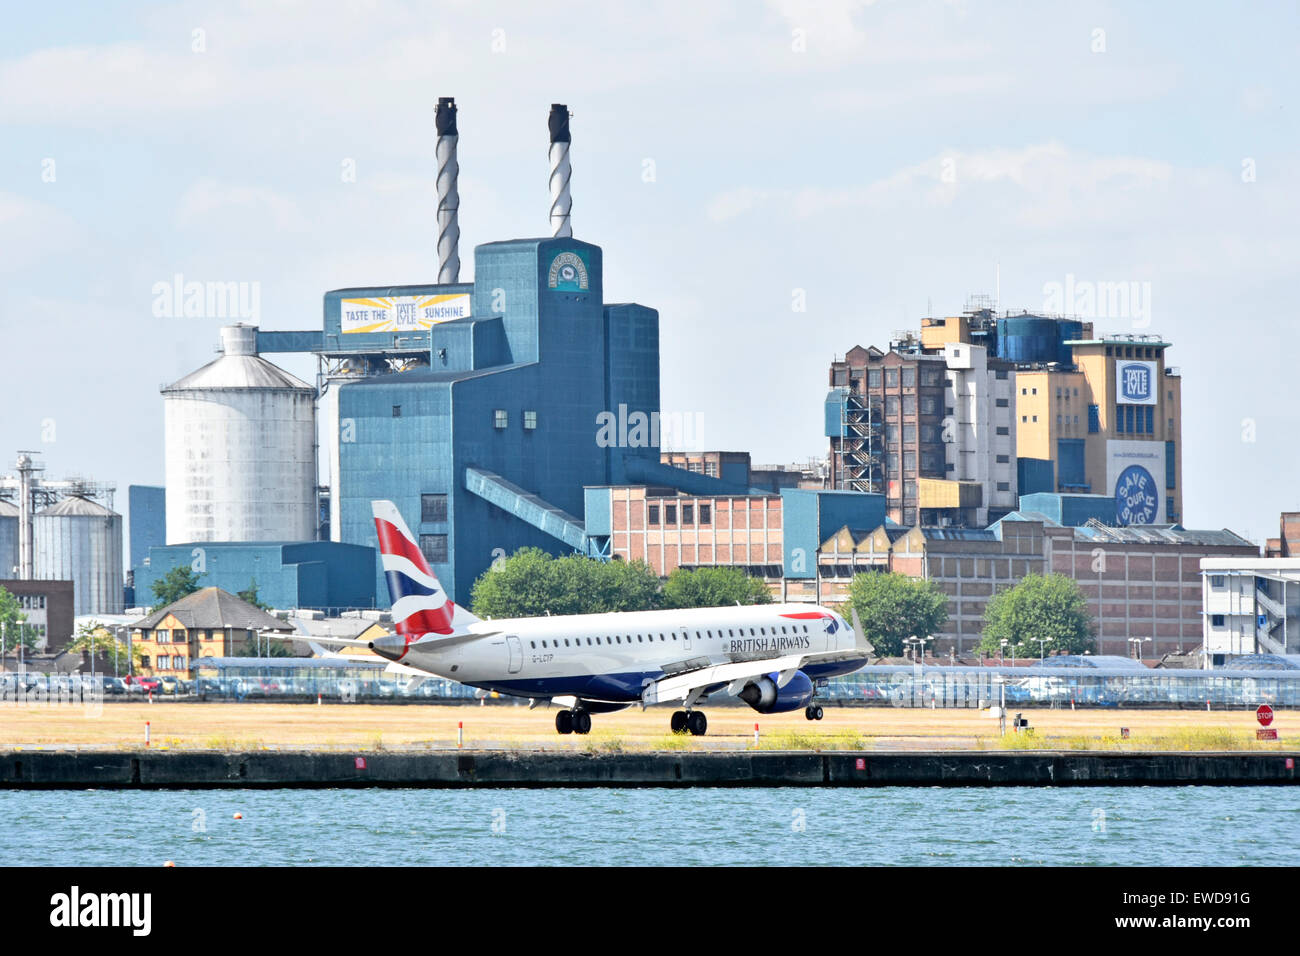 British Airways flight landing at London City Airport with Tate and Lyle Silvertown sugar refinery factory buildings - Stock Image